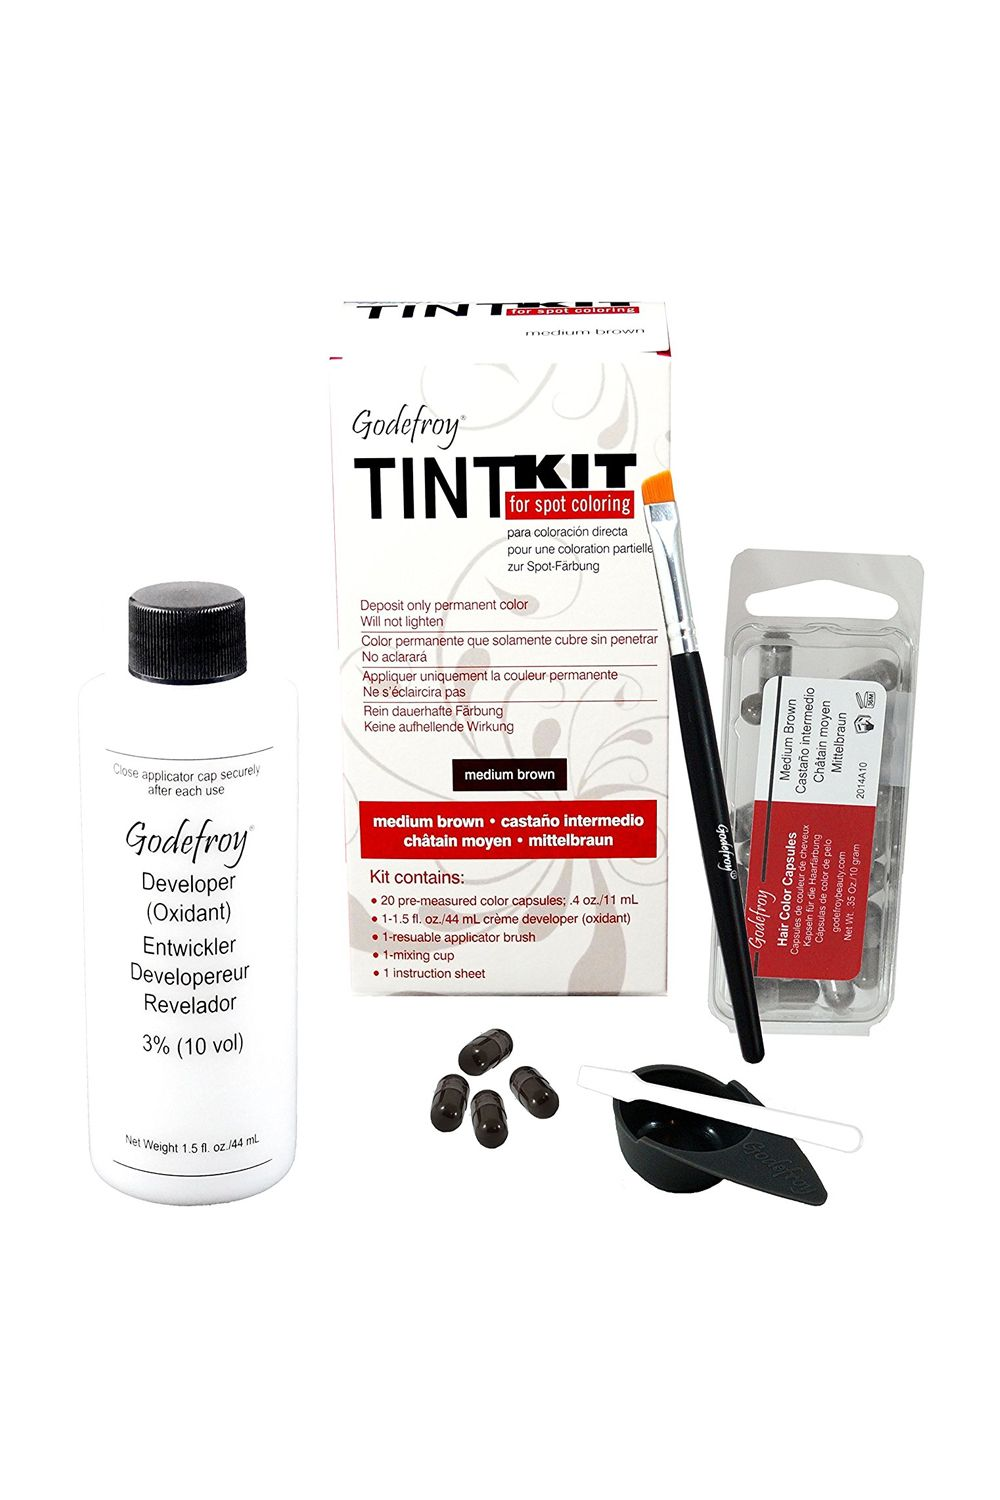 """<p>Though this tint is lacking in the fancy-packaging department, it makes up for it by being a true, salon-level brow tint&nbsp&#x3B;that lasts for weeks. Plus, each easy-to-follow kit contains 20 applications, making it shockingly affordable. </p><p><i data-redactor-tag=""""i"""">Godefroy Tint Kit, $14.18</i></p><p><strong data-redactor-tag=""""strong"""">BUY IT: <a href=""""https://www.amazon.com/gp/product/B0131FFTMO?"""">amazon.com</a>.&nbsp&#x3B;</strong><span data-redactor-tag=""""span""""></span></p>"""